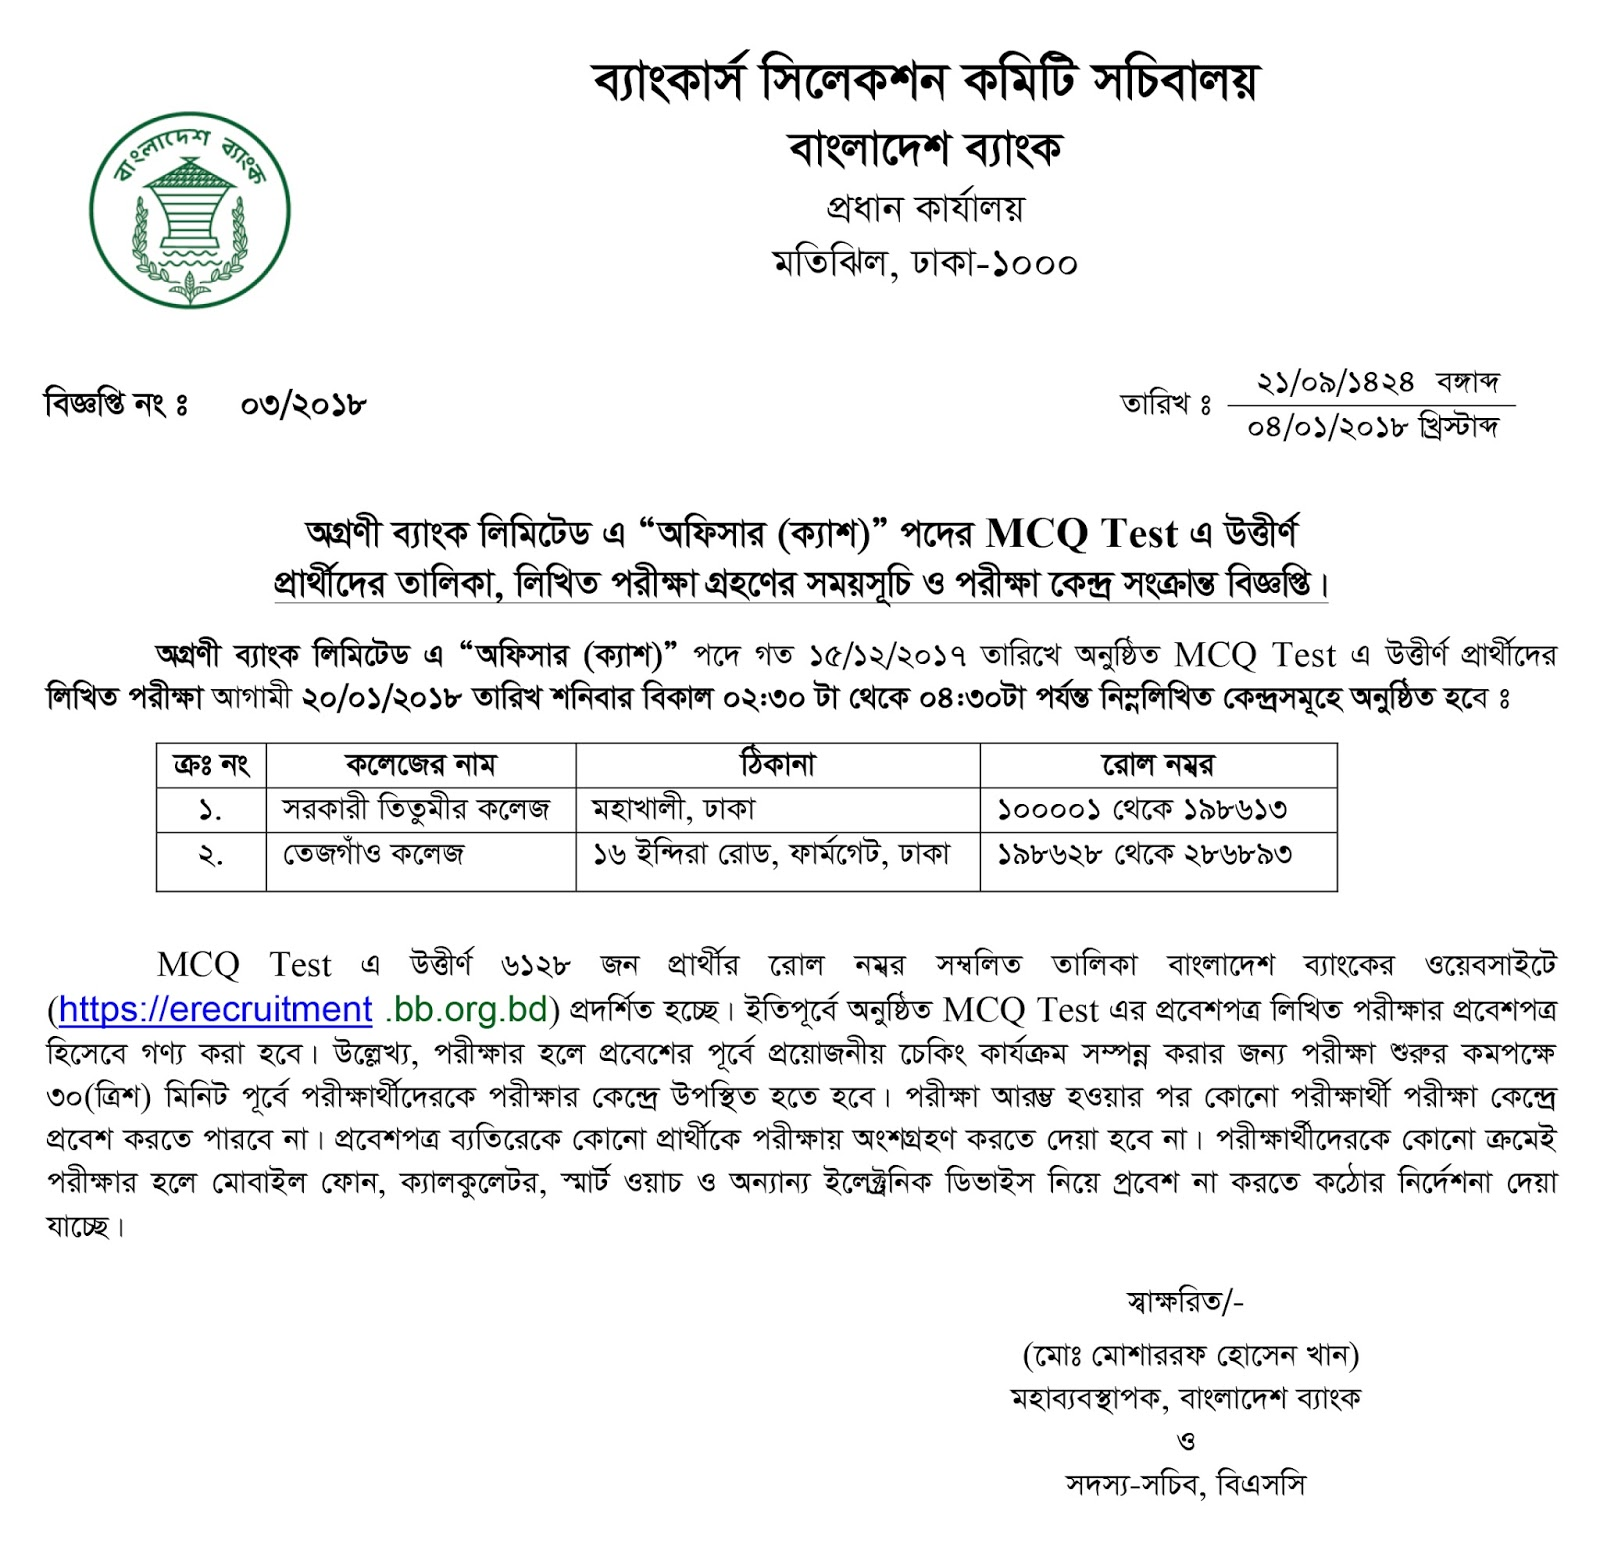 Circular regarding date and time schedule of Written Exam for the post Officer(Cash) of Agrani Bank Limited